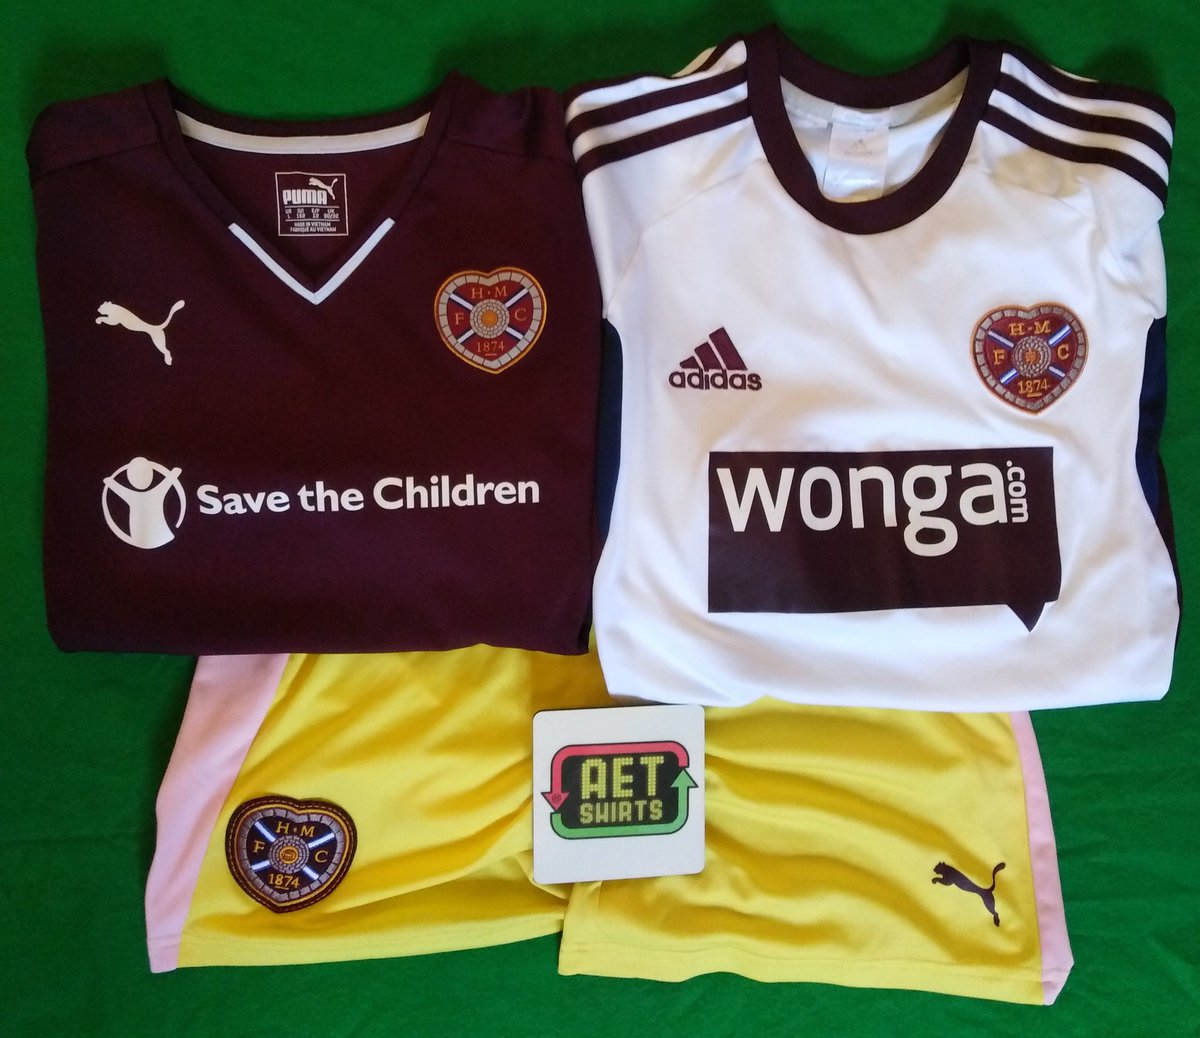 Kids Packs AVAILABLE NOW ♻️ Each pack contains shirt bundle shown below plus football memorabilia - stickers, cards, corinthian! £25 Delivery included ☑️ DM for info ⚽